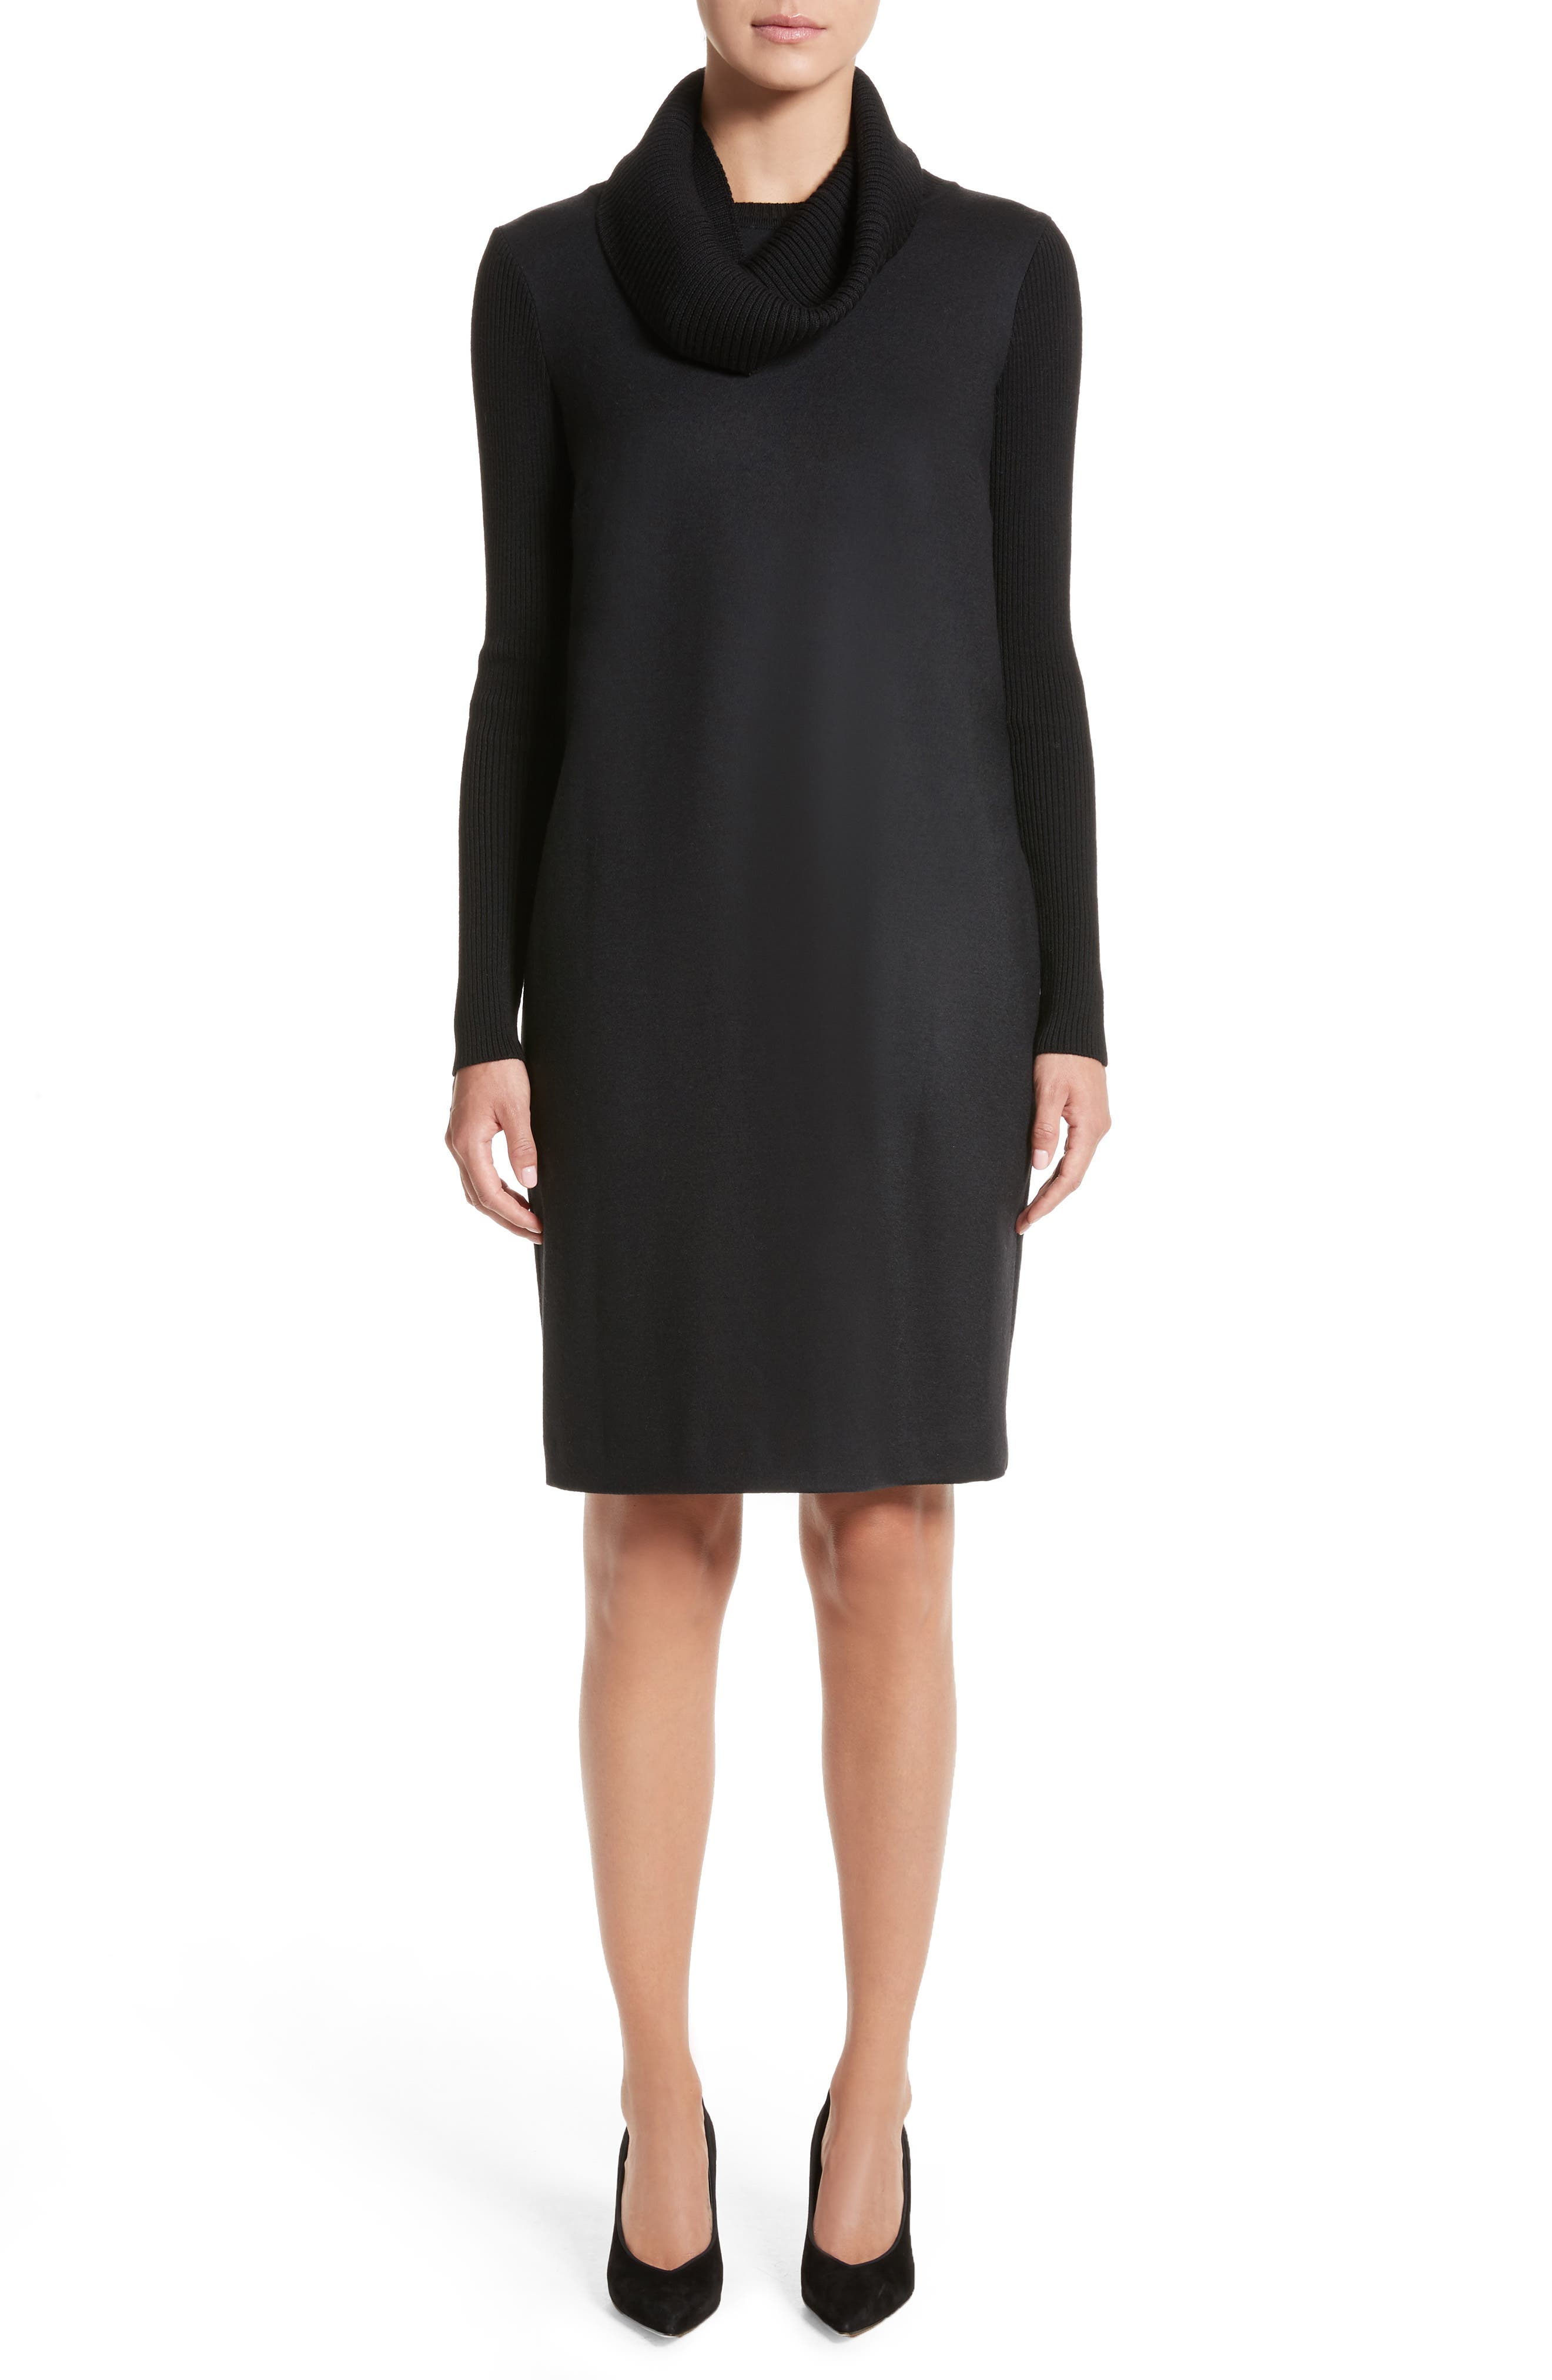 Cancan Wool Jersey Dress with Removable Knit Cowl,                         Main,                         color, 001